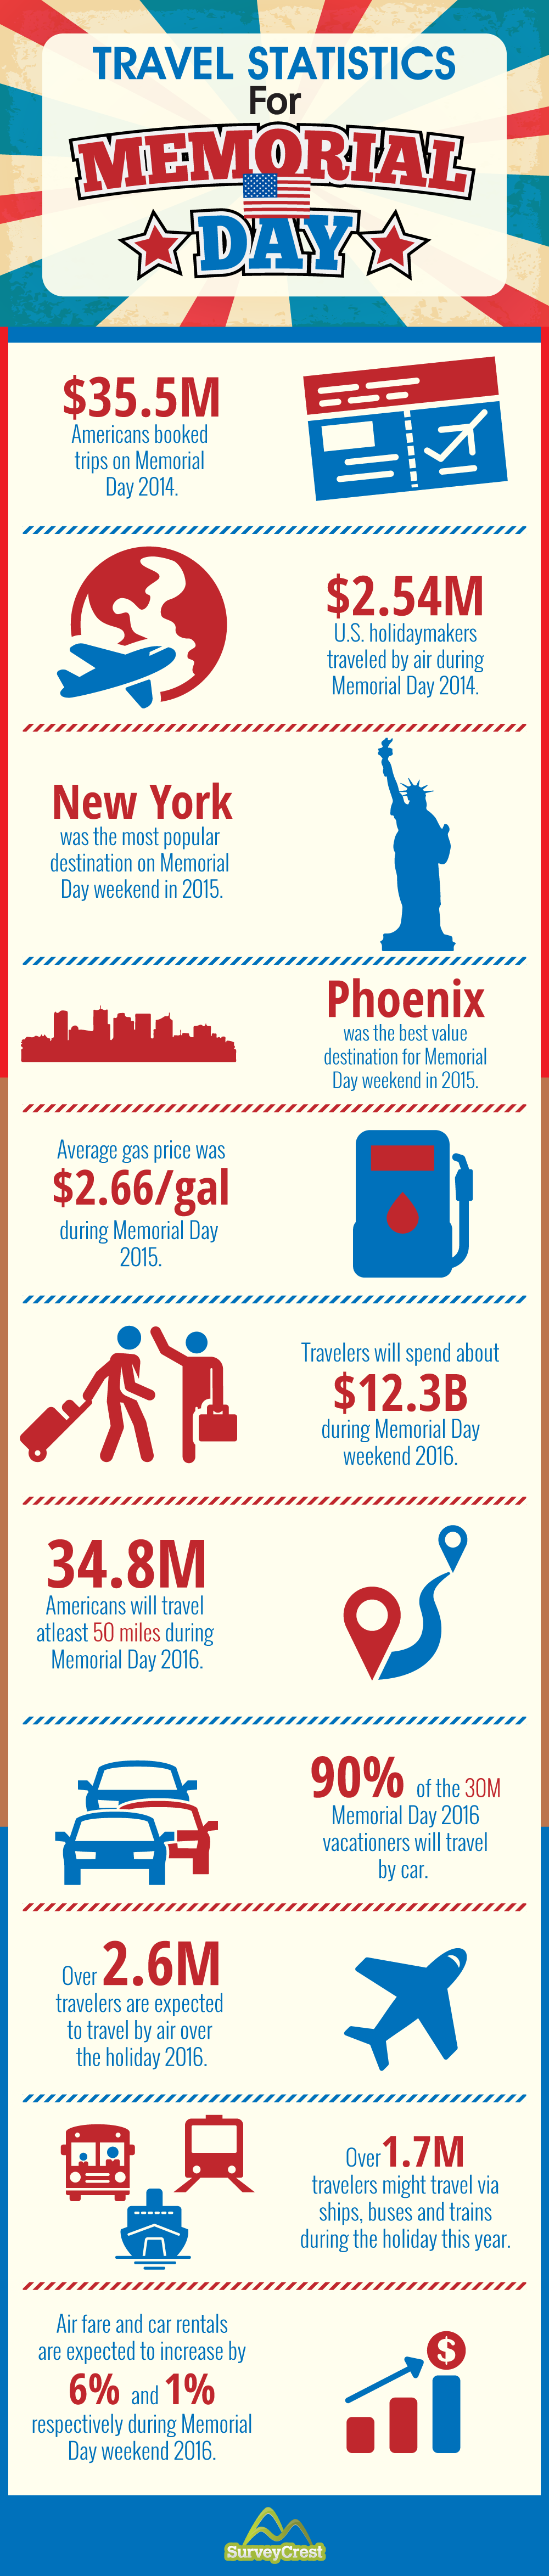 [INFOGRAPHIC] Travel Statistics For Memorial Day